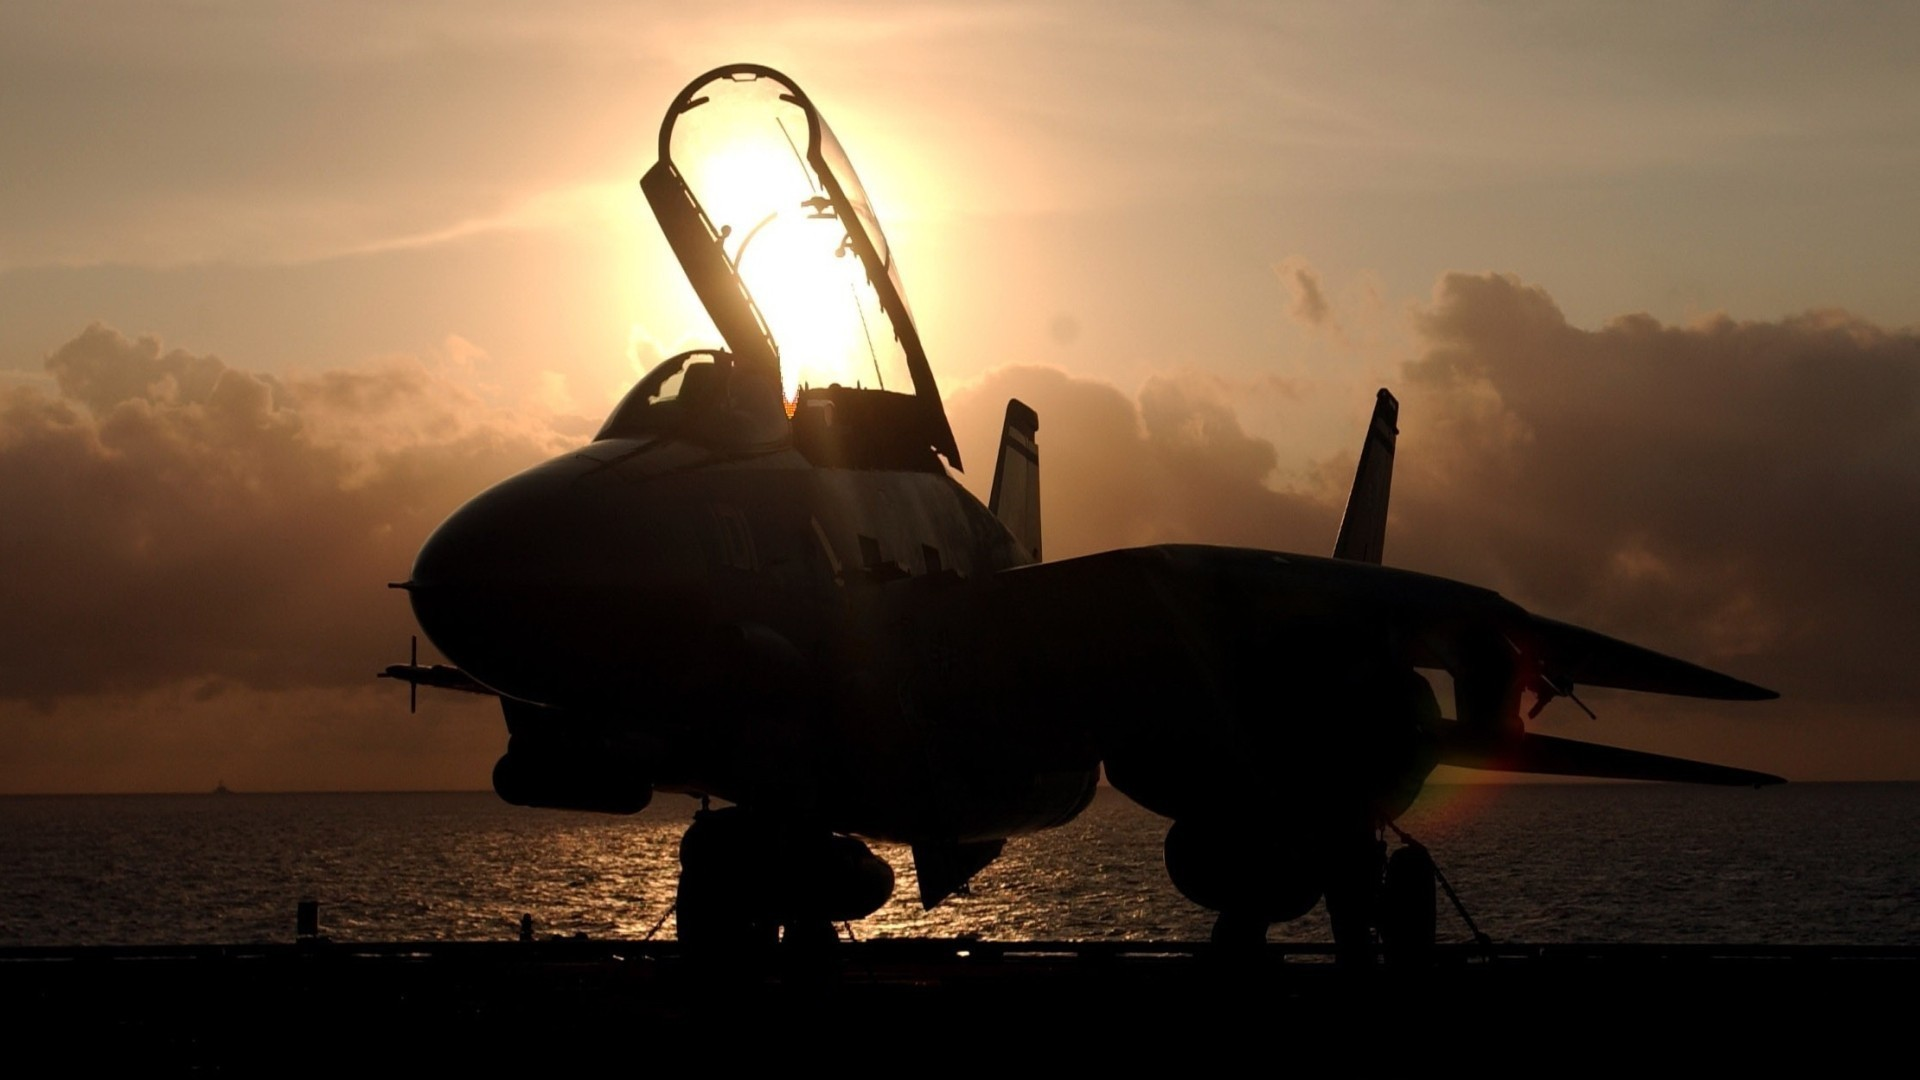 1920x1080 F14 tomcat aircraft carriers fighter jets military wallpaper